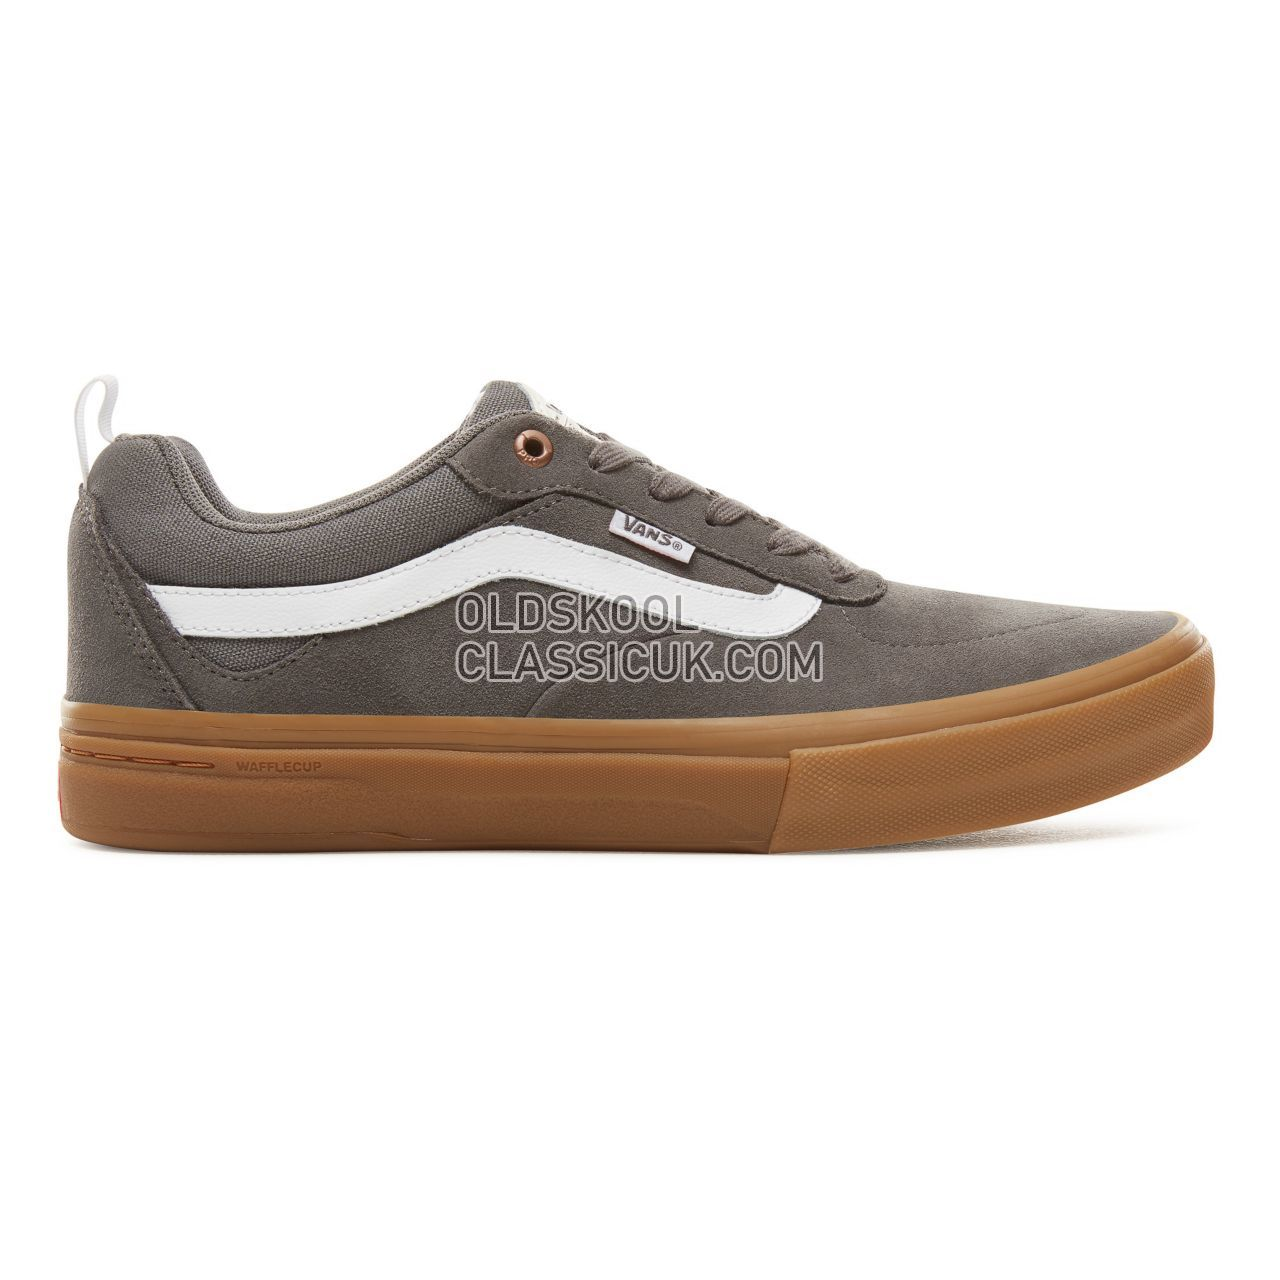 Vans Kyle Walker Pro Sneakers Mens Pewter/Light Gum VA2XSGKT9 Shoes